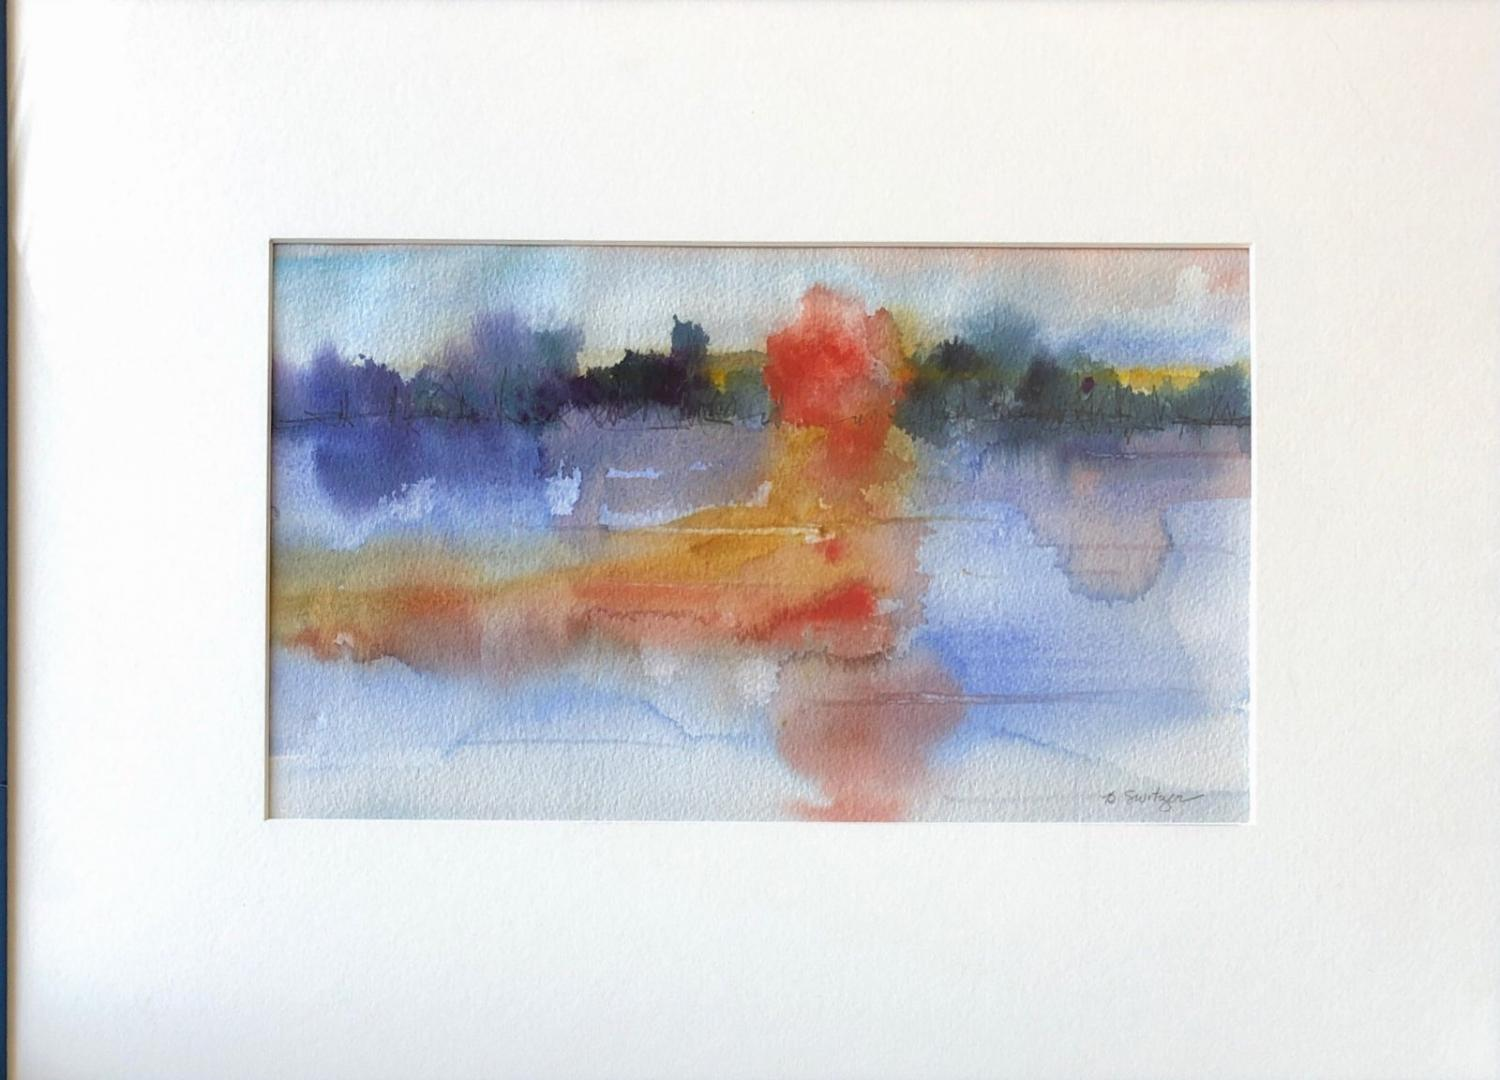 Bonnie Switzer, Sunset. Watercolor, 15 in. x 20.5 in. Courtesy of the artist.